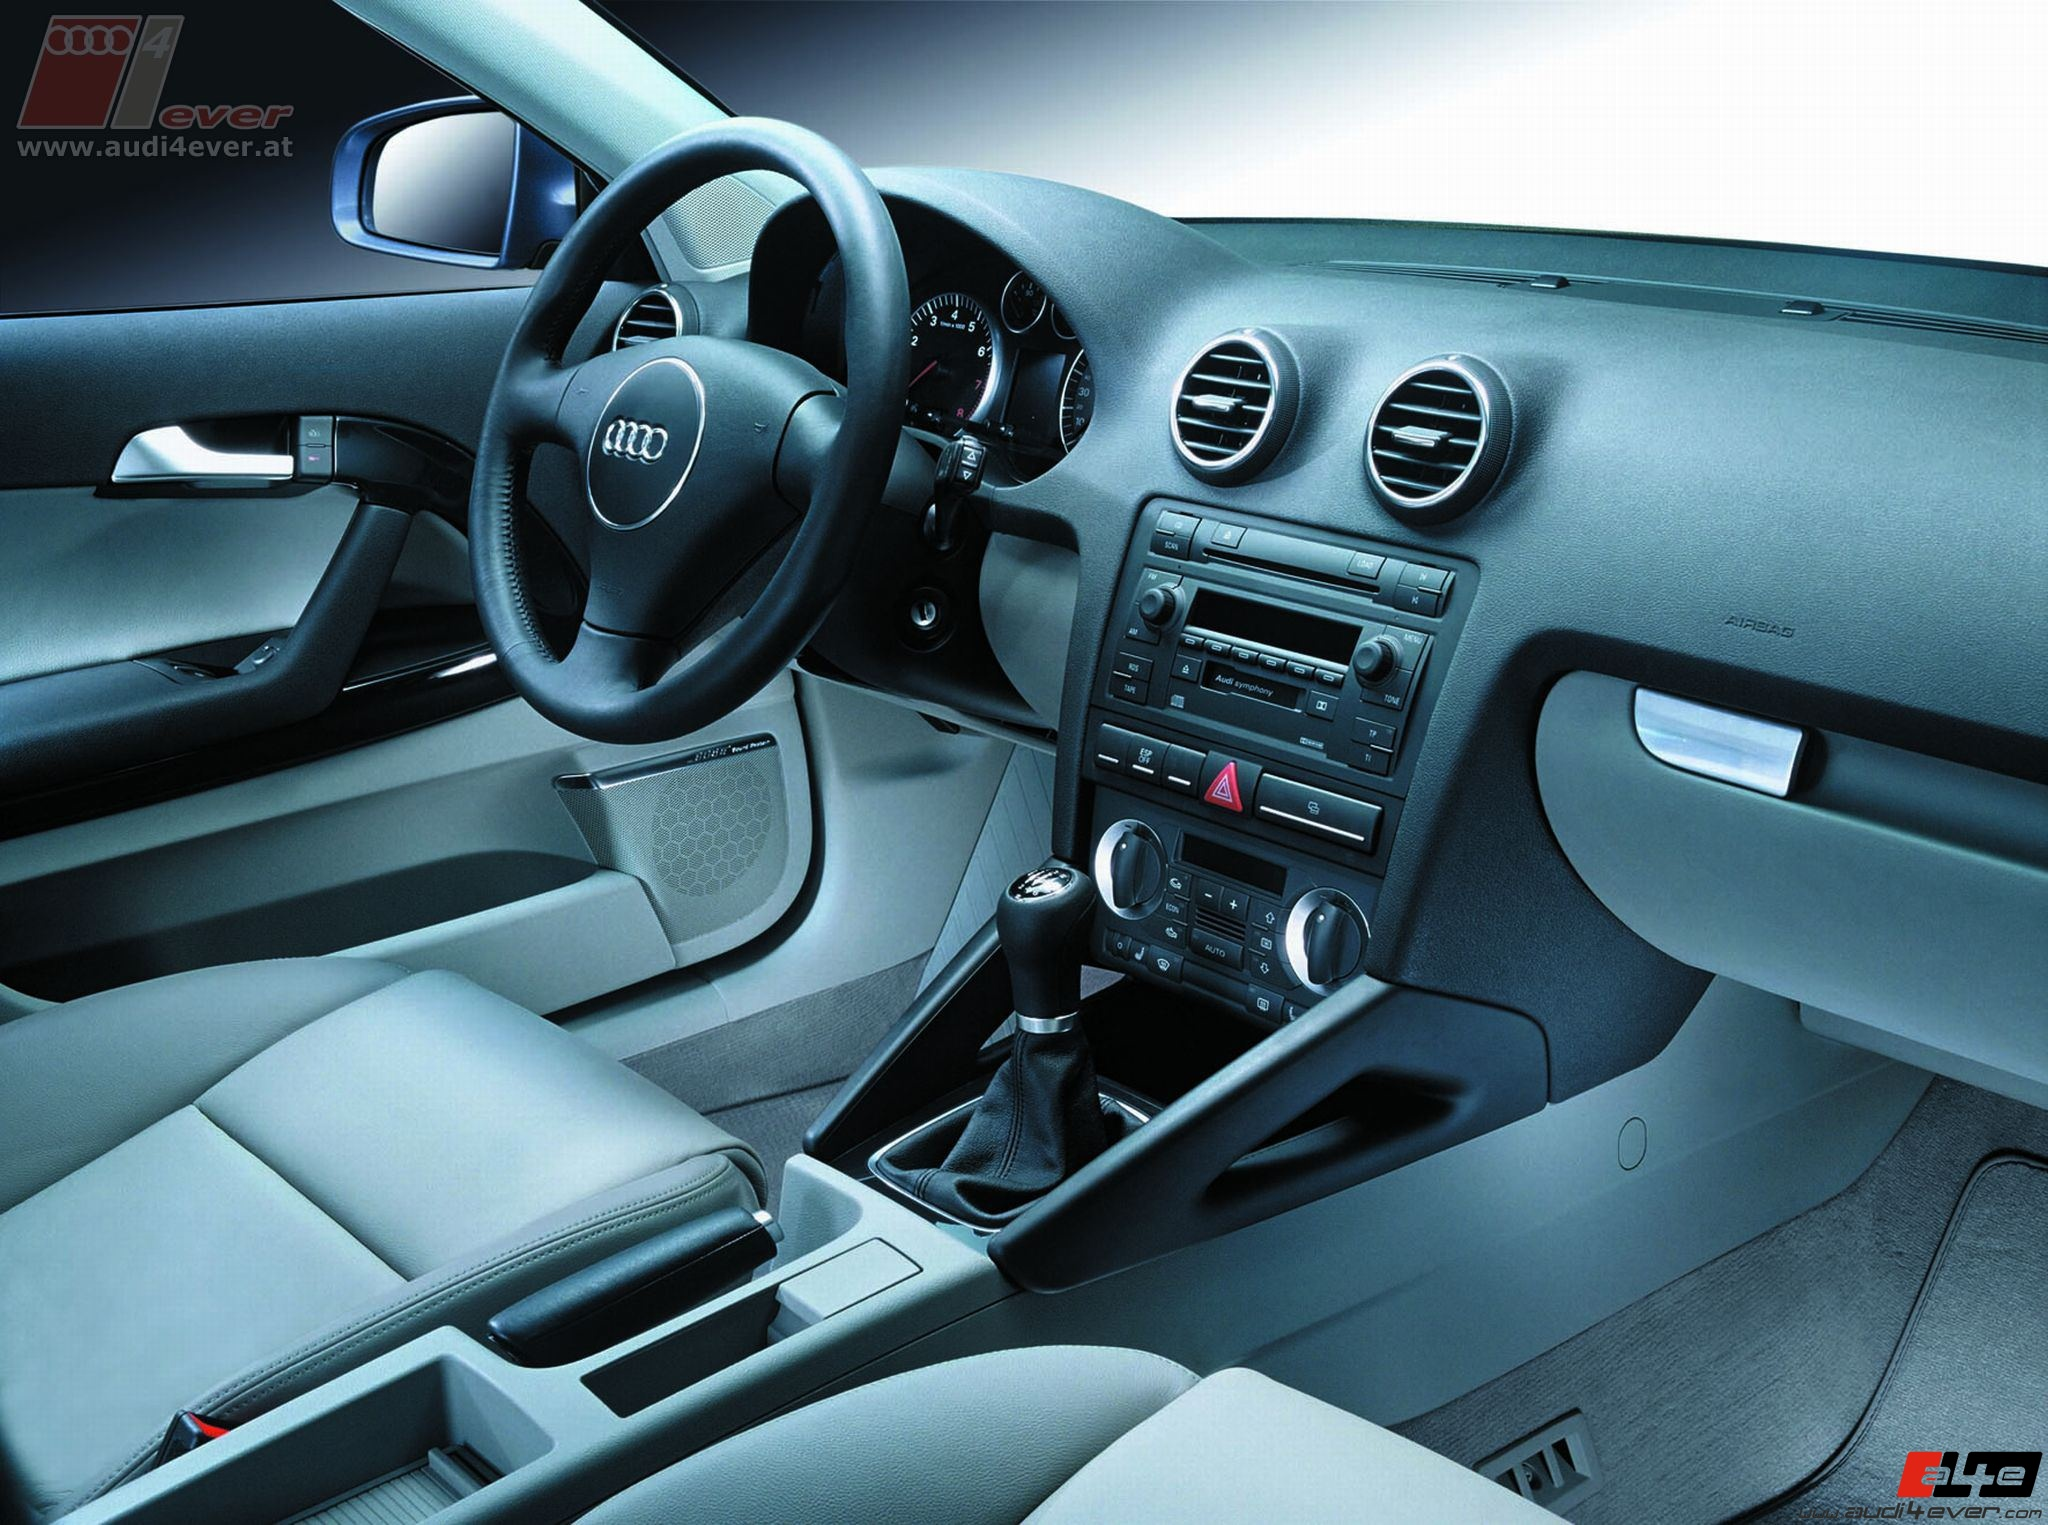 A4e gallery audi a3 8p audi a3 8p interieur for Audi a3 interieur